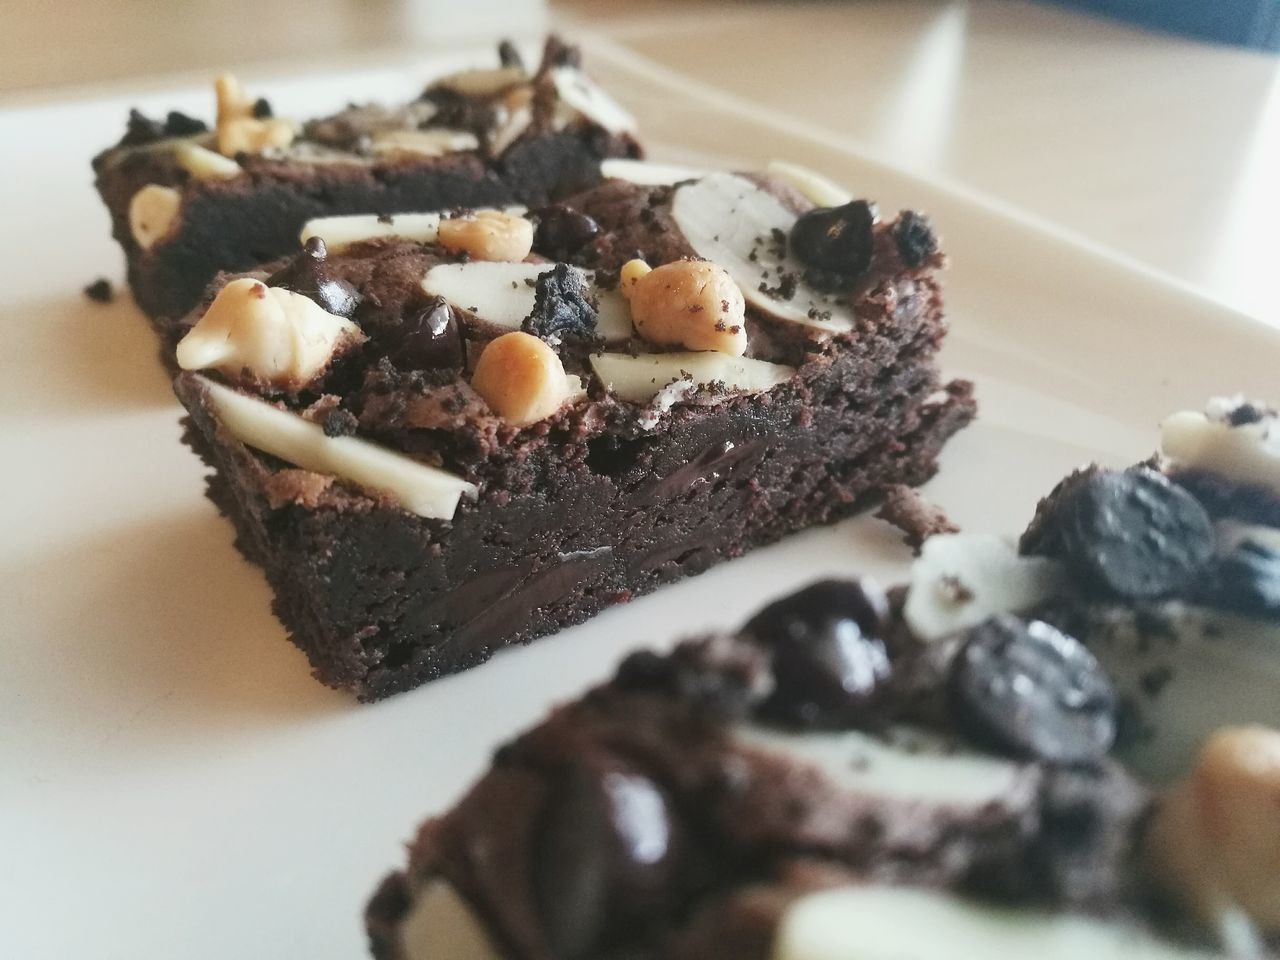 Indoors  Food Healthy Eating Food And Drink No People Close-up Freshness Ready-to-eat Day All_brownie HuaweiP9 Brownie Brownies Brownie Mix  Homemade Brownies Homemade Bakery Chocolate Dark Chocolate Dessert Desserts Almond